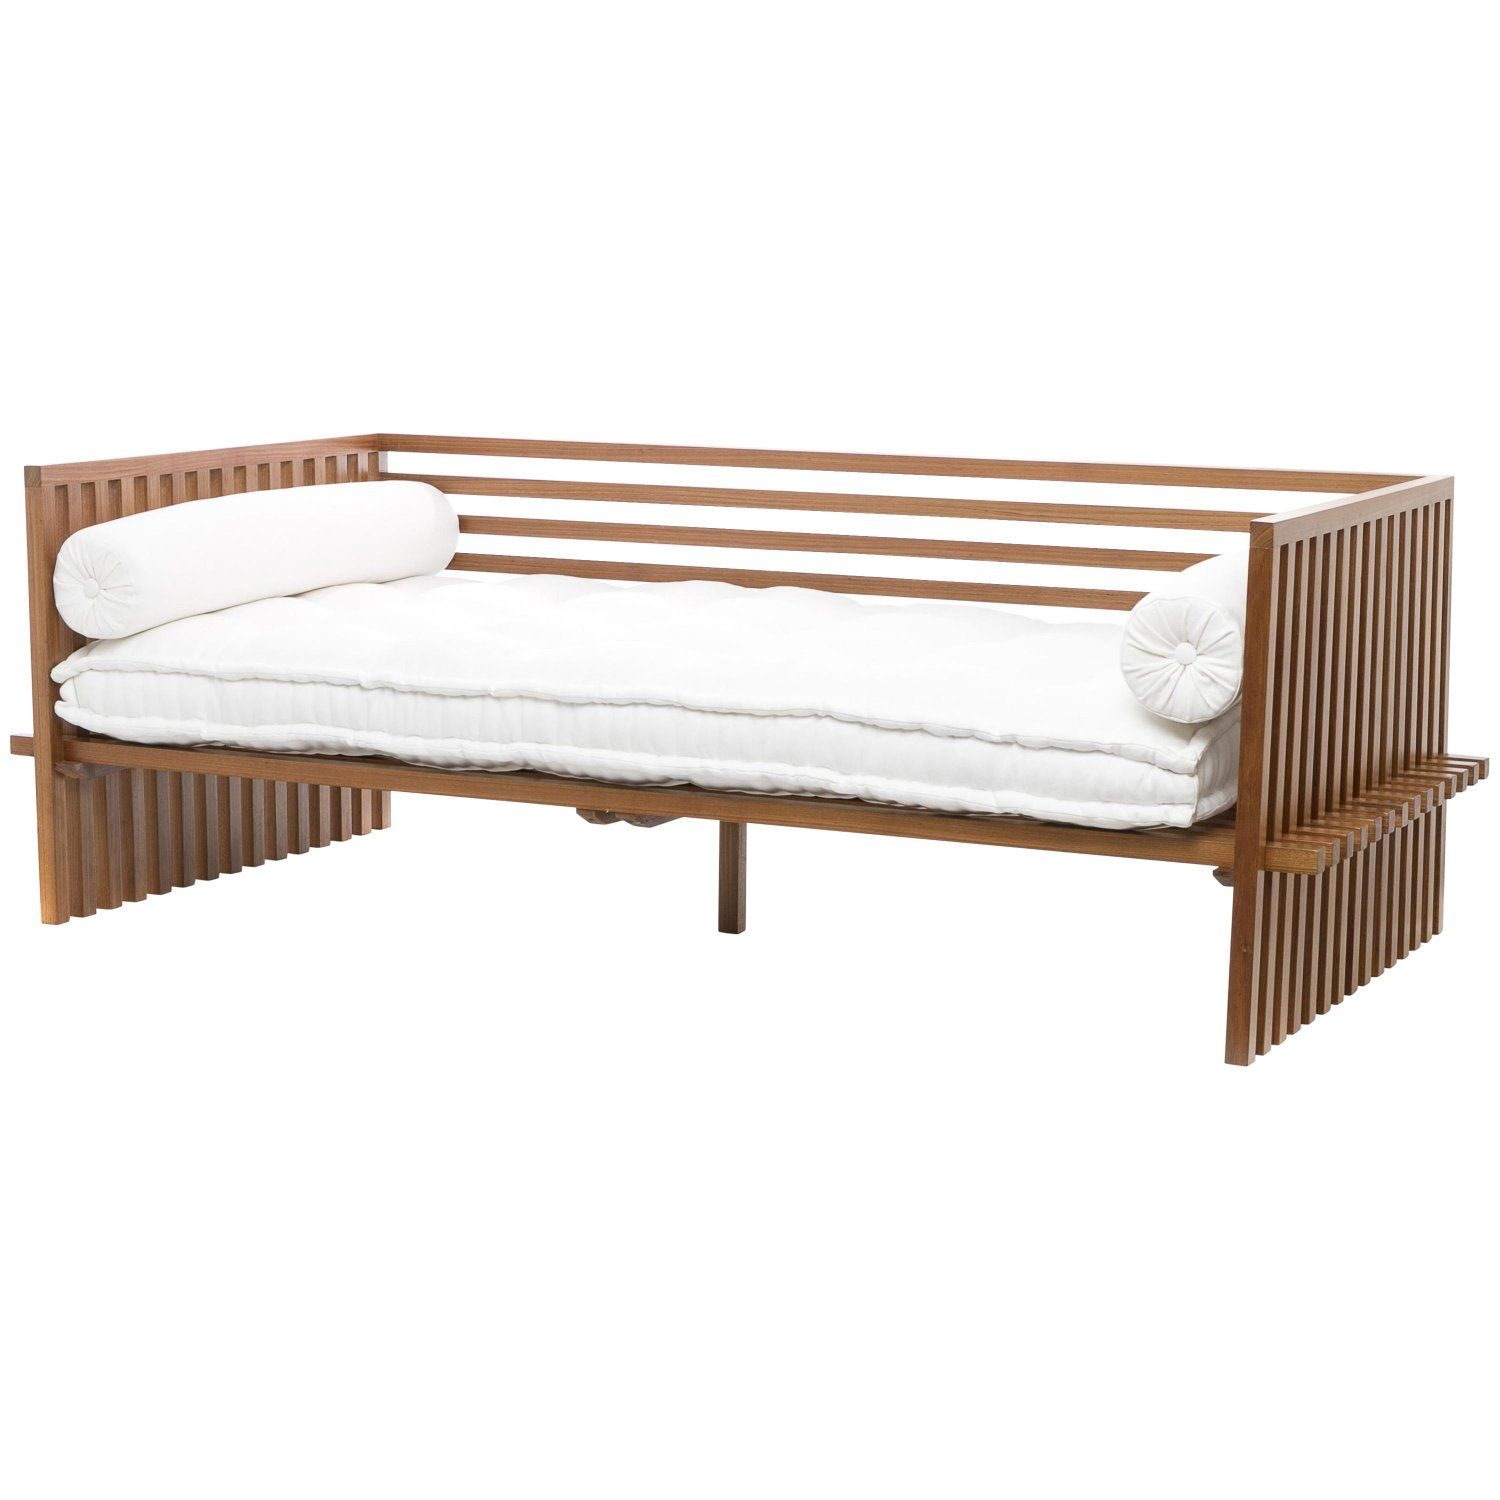 Futon Daybed Sofa Contemporary Japanese Style Sofa In Solid Wood